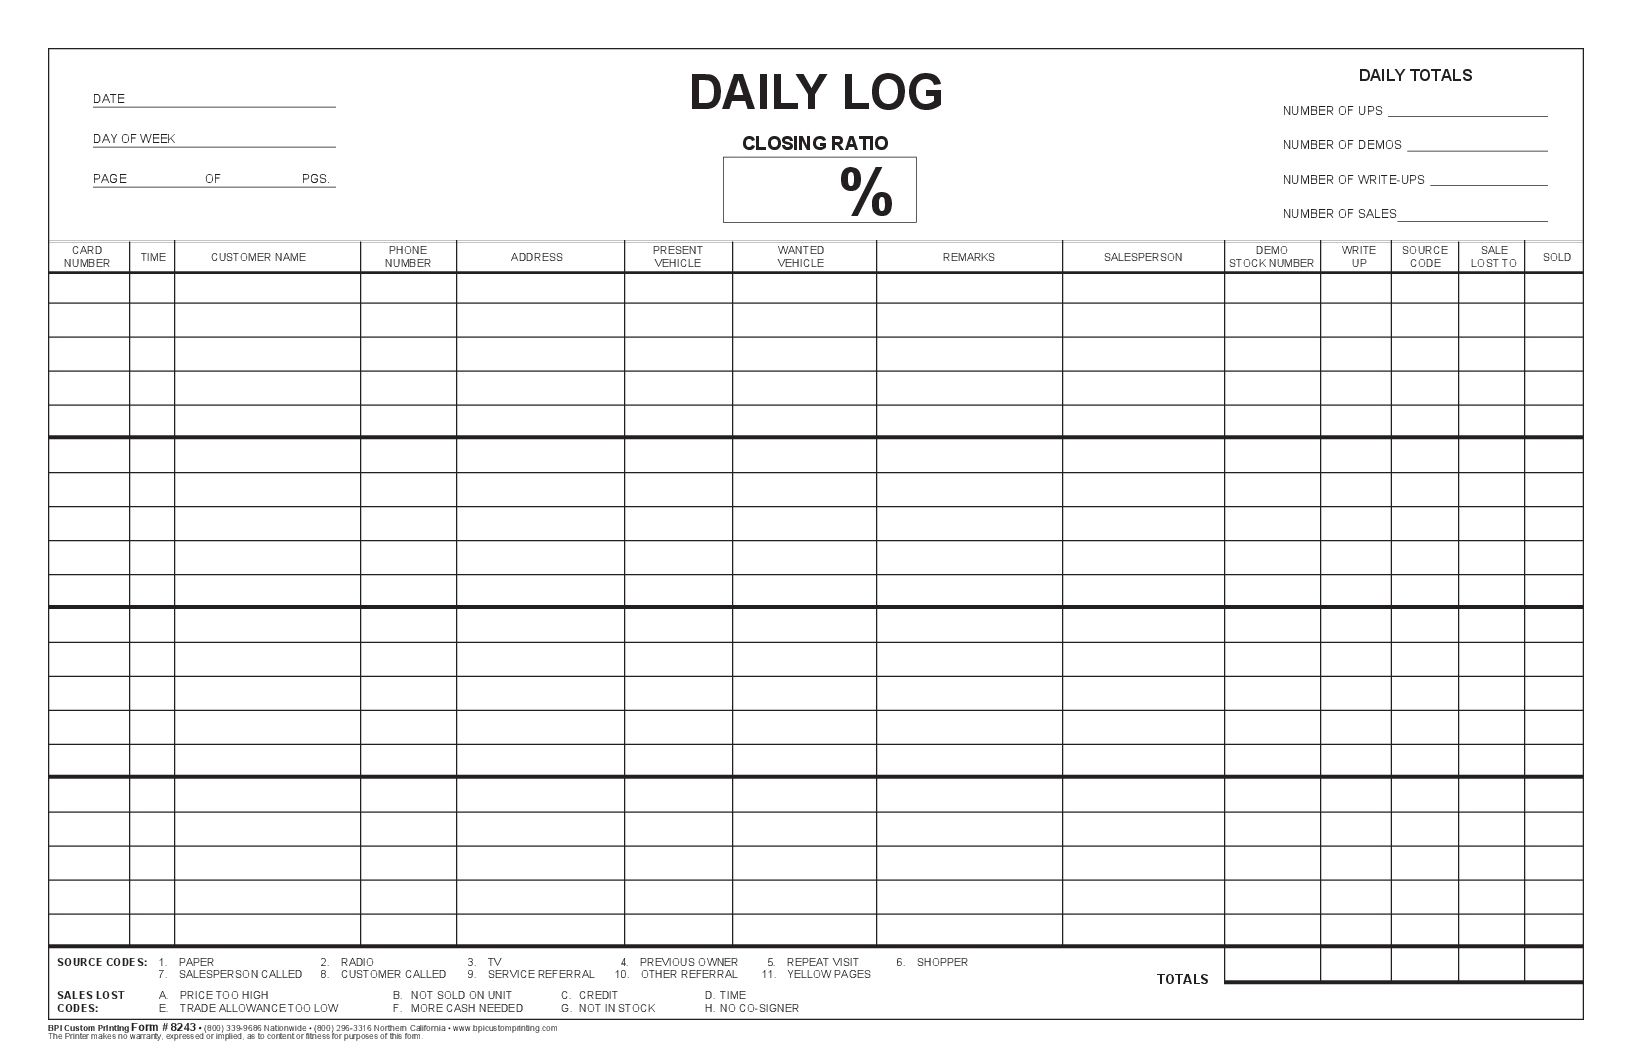 Closing Ratio Daily Log Bpi Dealer Supplies